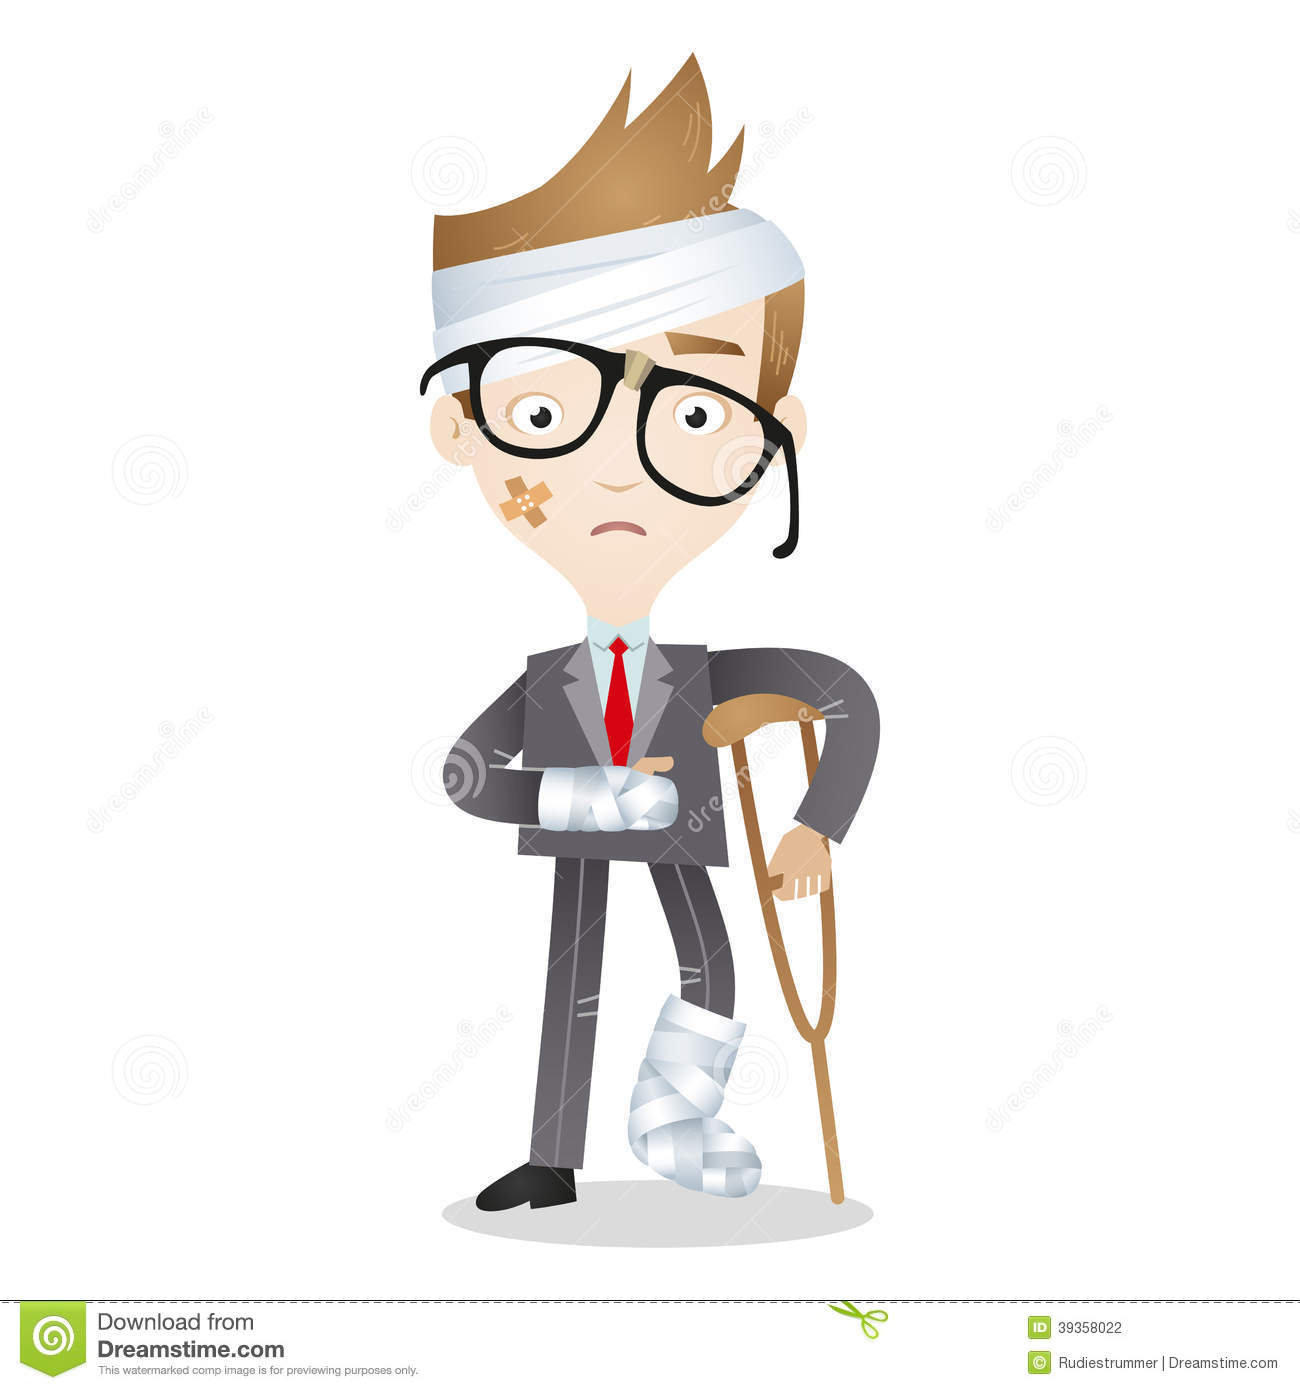 New One together with Wel e To The United Fascist States Of America also Stock Photography Injured Cartoon Businessman Bandages Crutches Vector Illustration Image39358022 besides Royalty Free Stock Photo Desktop  puter Image6125095 further Theories Of Moral Development 24208613. on broken chair